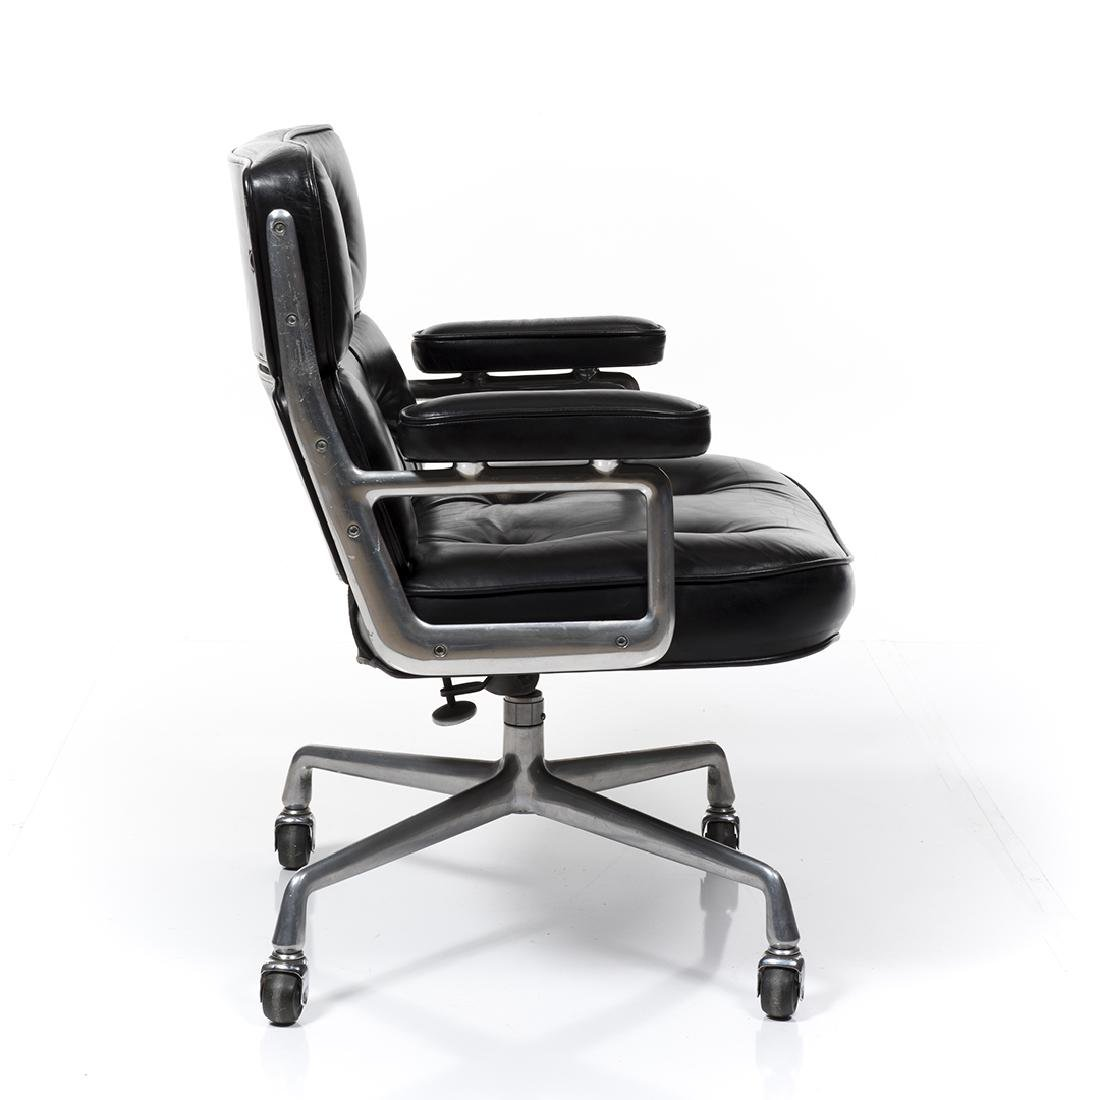 Charles Eames Time-Life Lobby Chair - 3